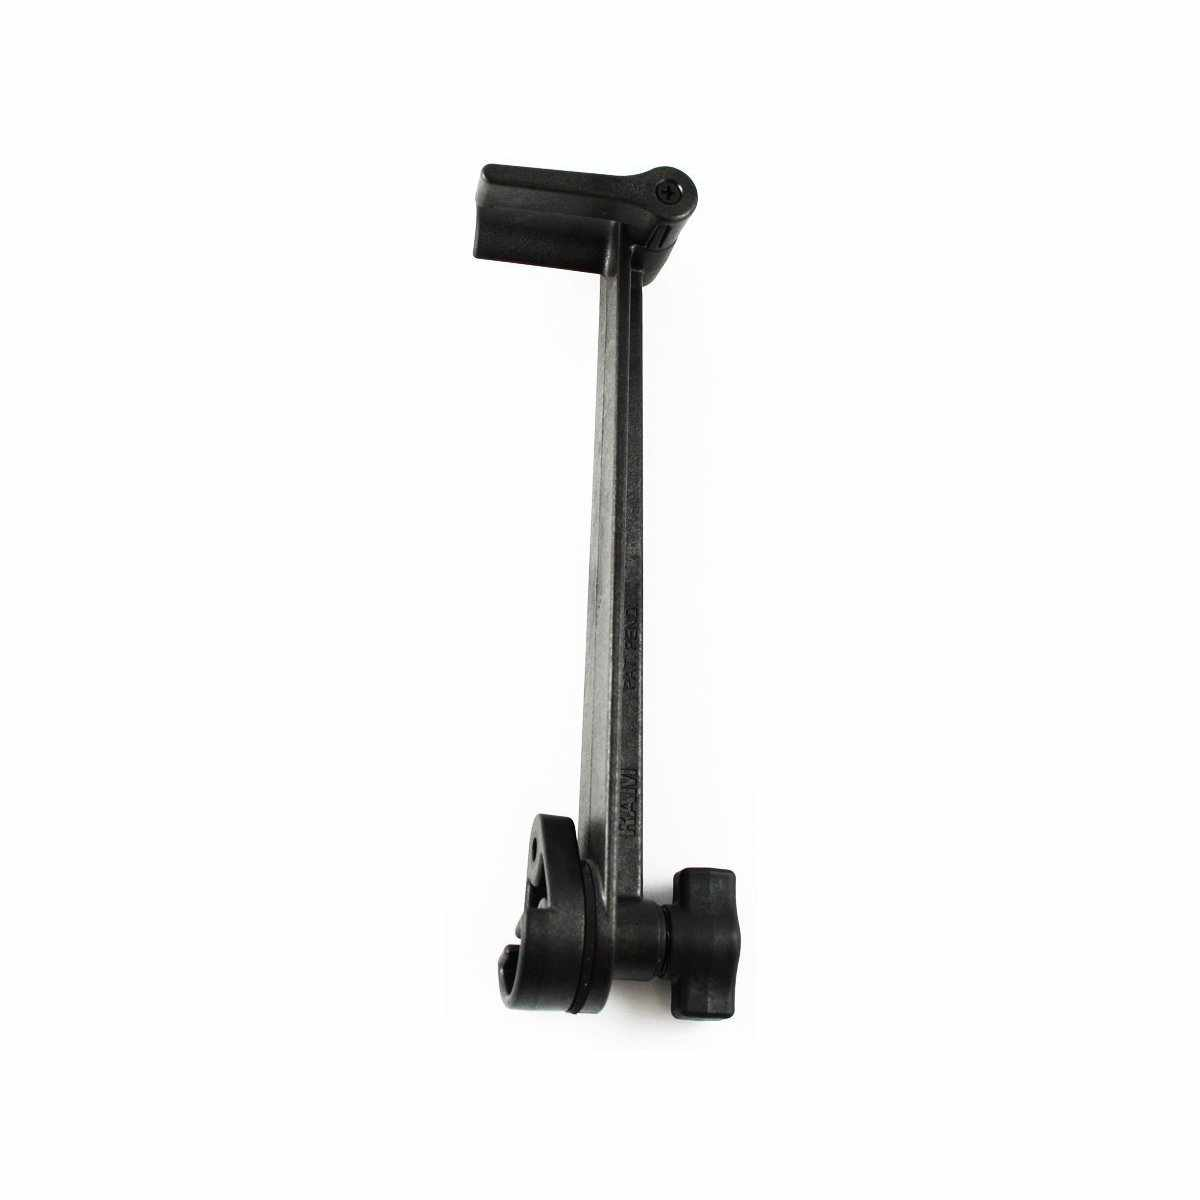 RAM Adjustable Laptop Screen Support Arm (RAM-234-S2U) - Modest Mounts